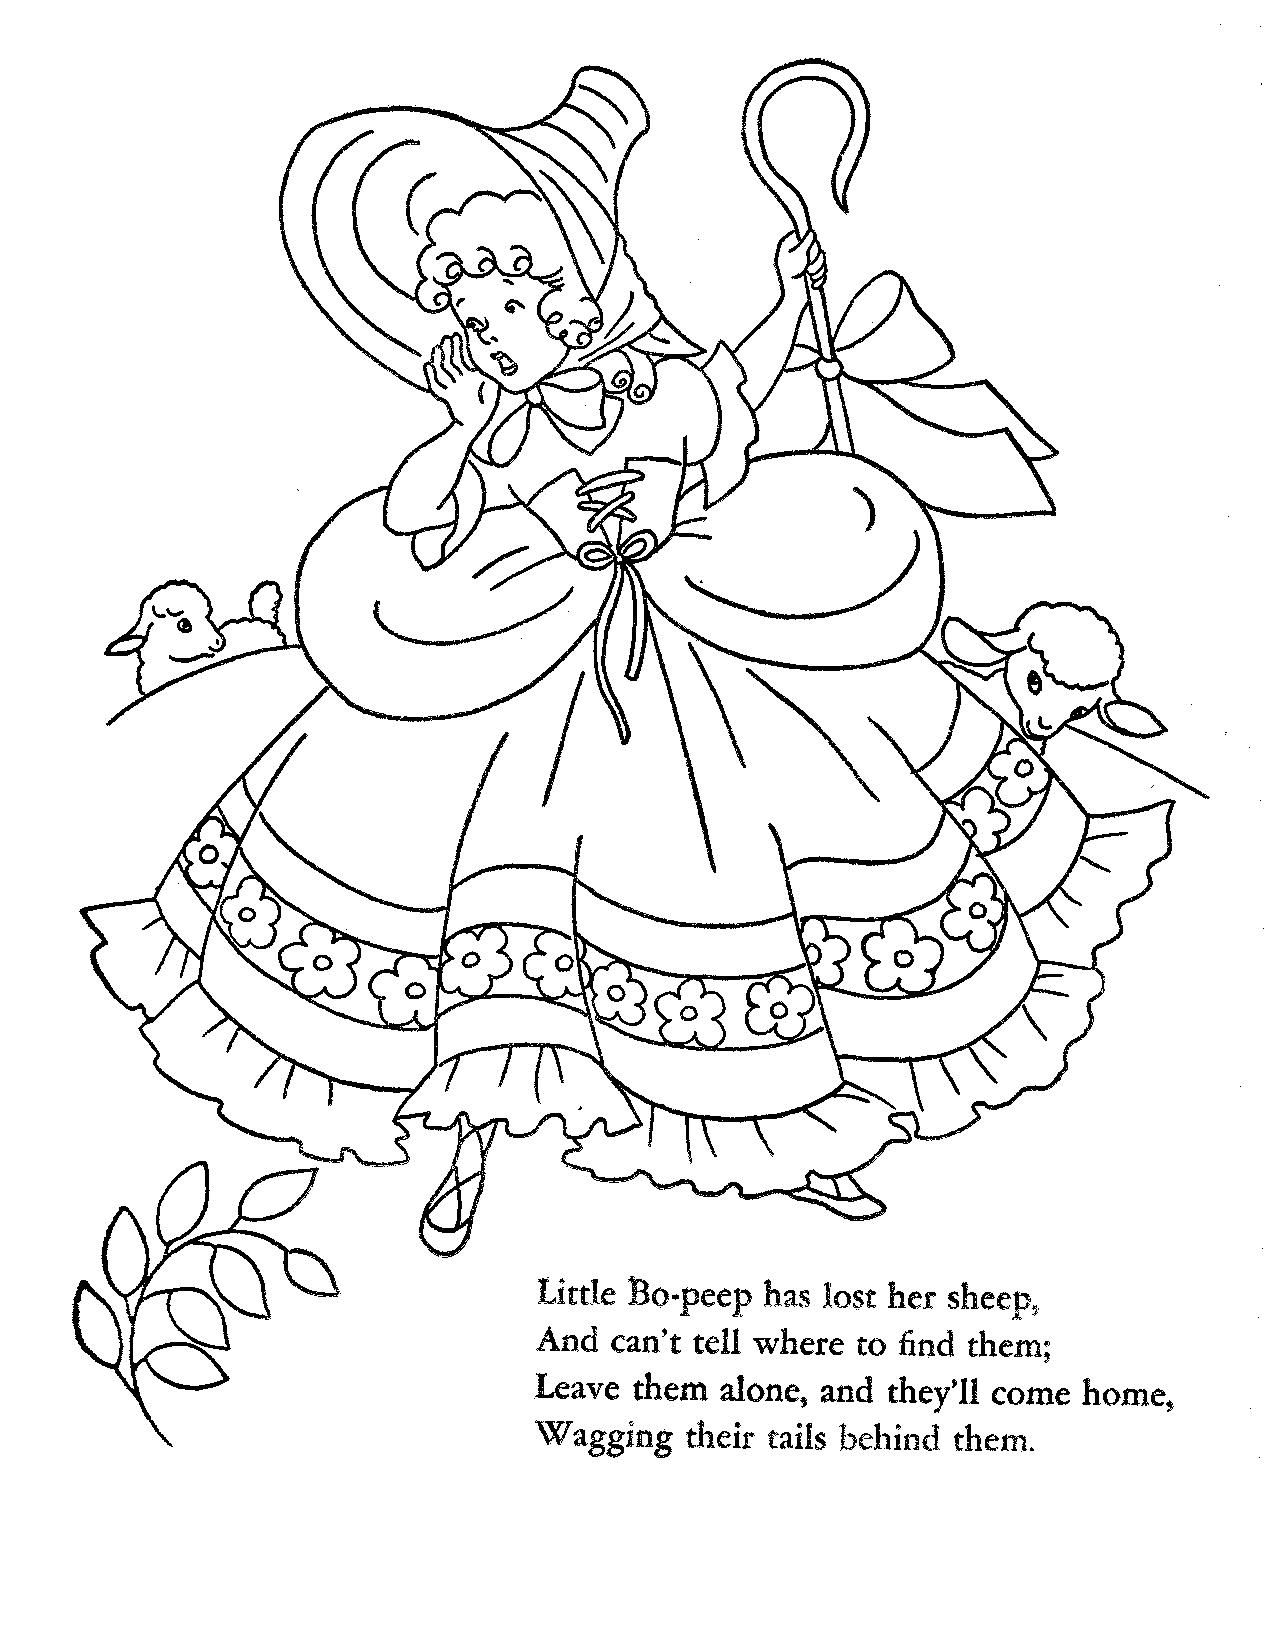 1952 Mother Goose Cut-Out Coloring Book | nursey rhymes embroidery ...